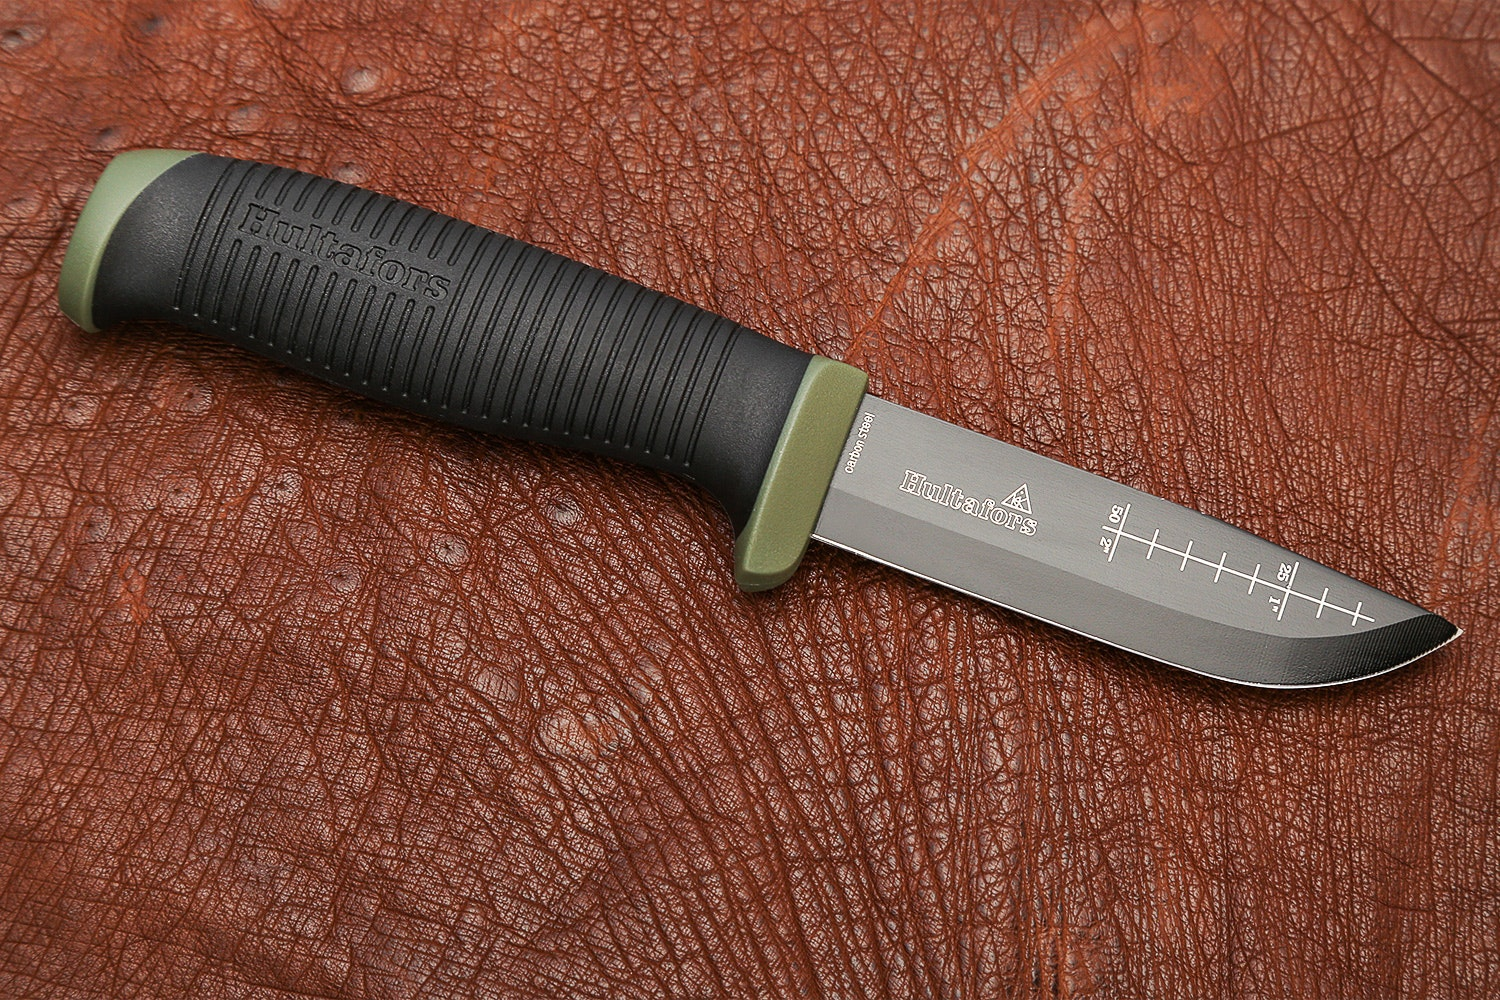 Hultafors Expedition Knife (+ $XX)